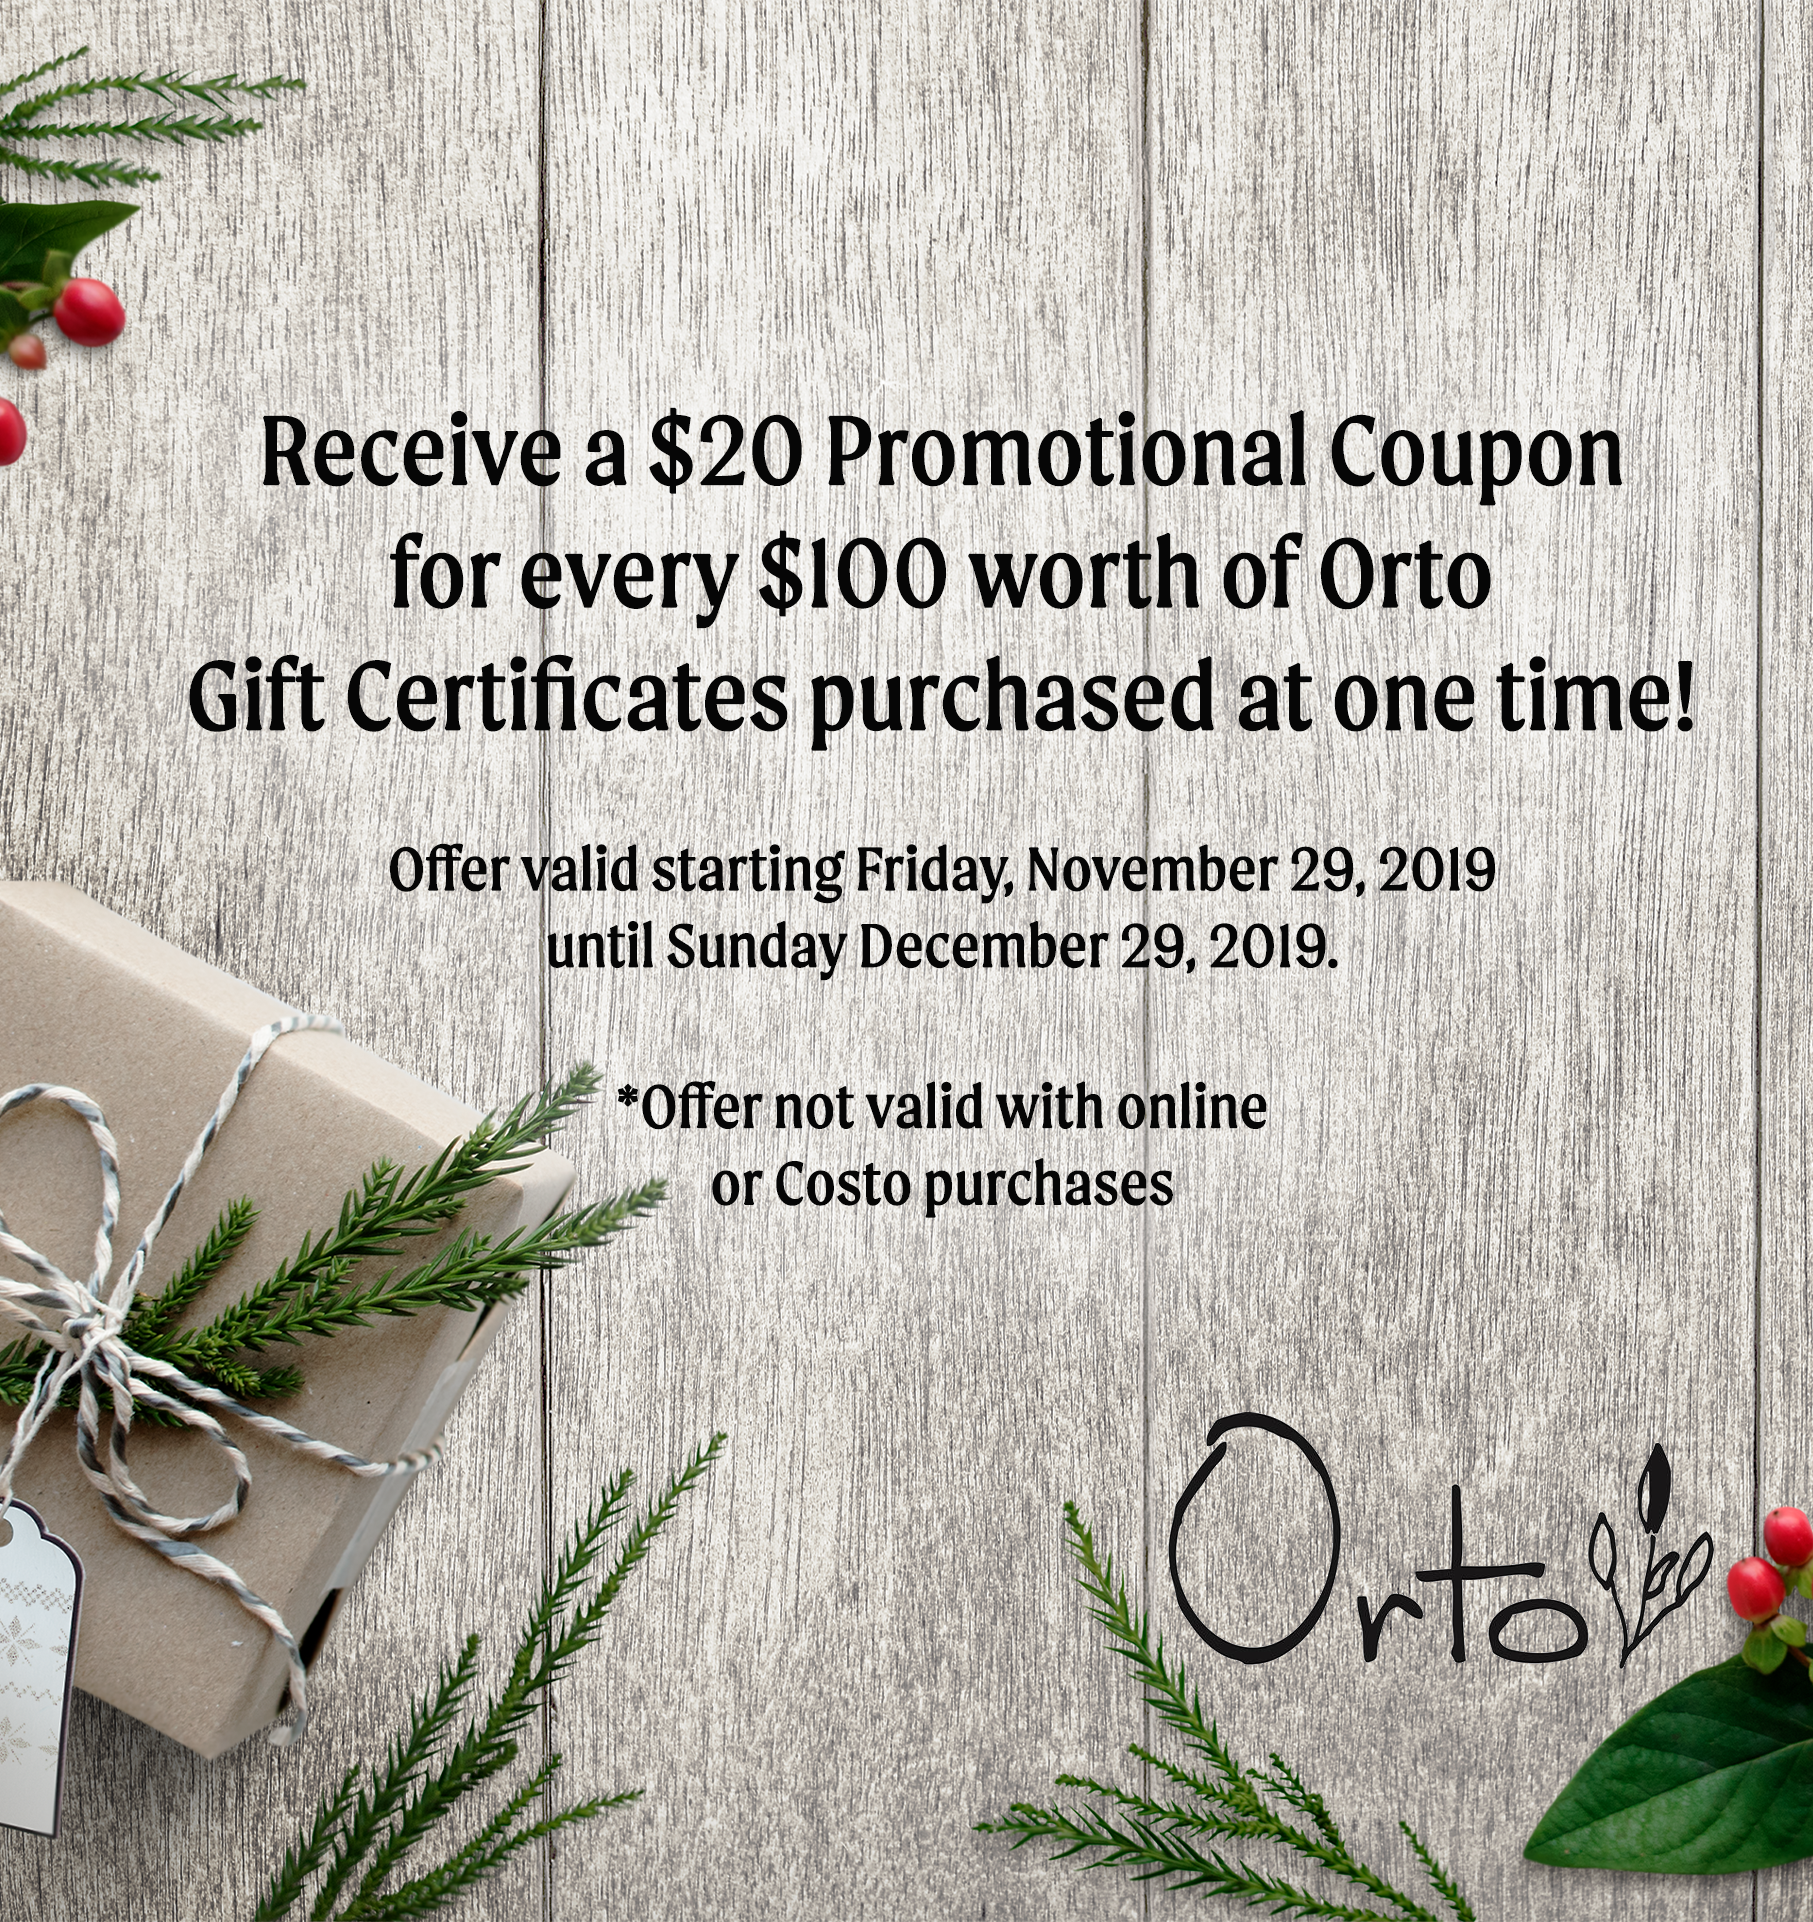 Orto Holiday Gift Card Promotion : Receive one $20 promotional coupon for every $100 worth of Orto gift certificates purchased at one time! Offer valid starting Friday, November 29, 2019 until Sunday December 29, 2019.  Offer not valid with online or Costo purchases.